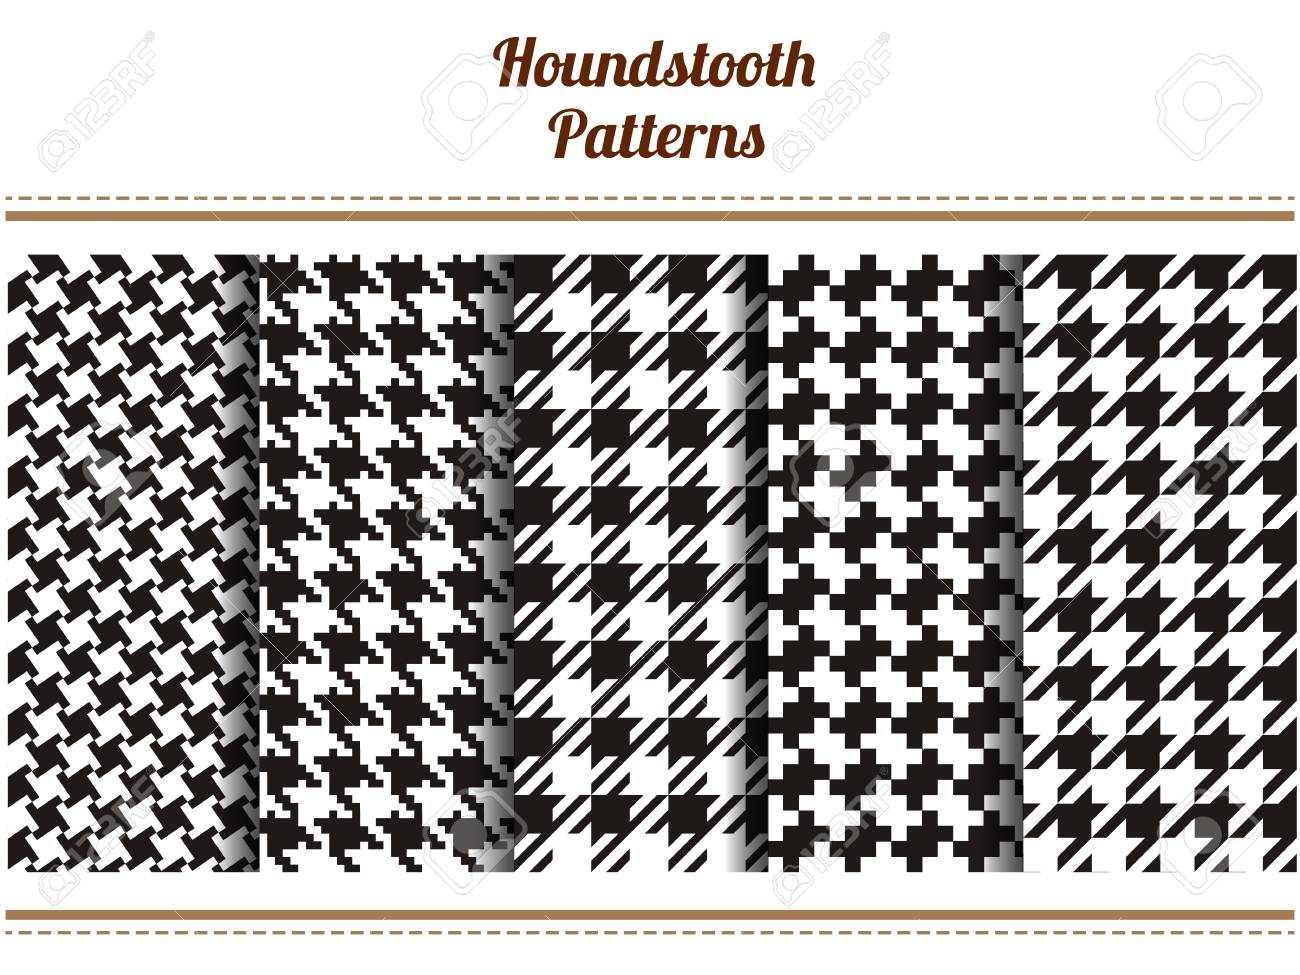 Set of seamless black and white houndstooth vector patterns - 61753248